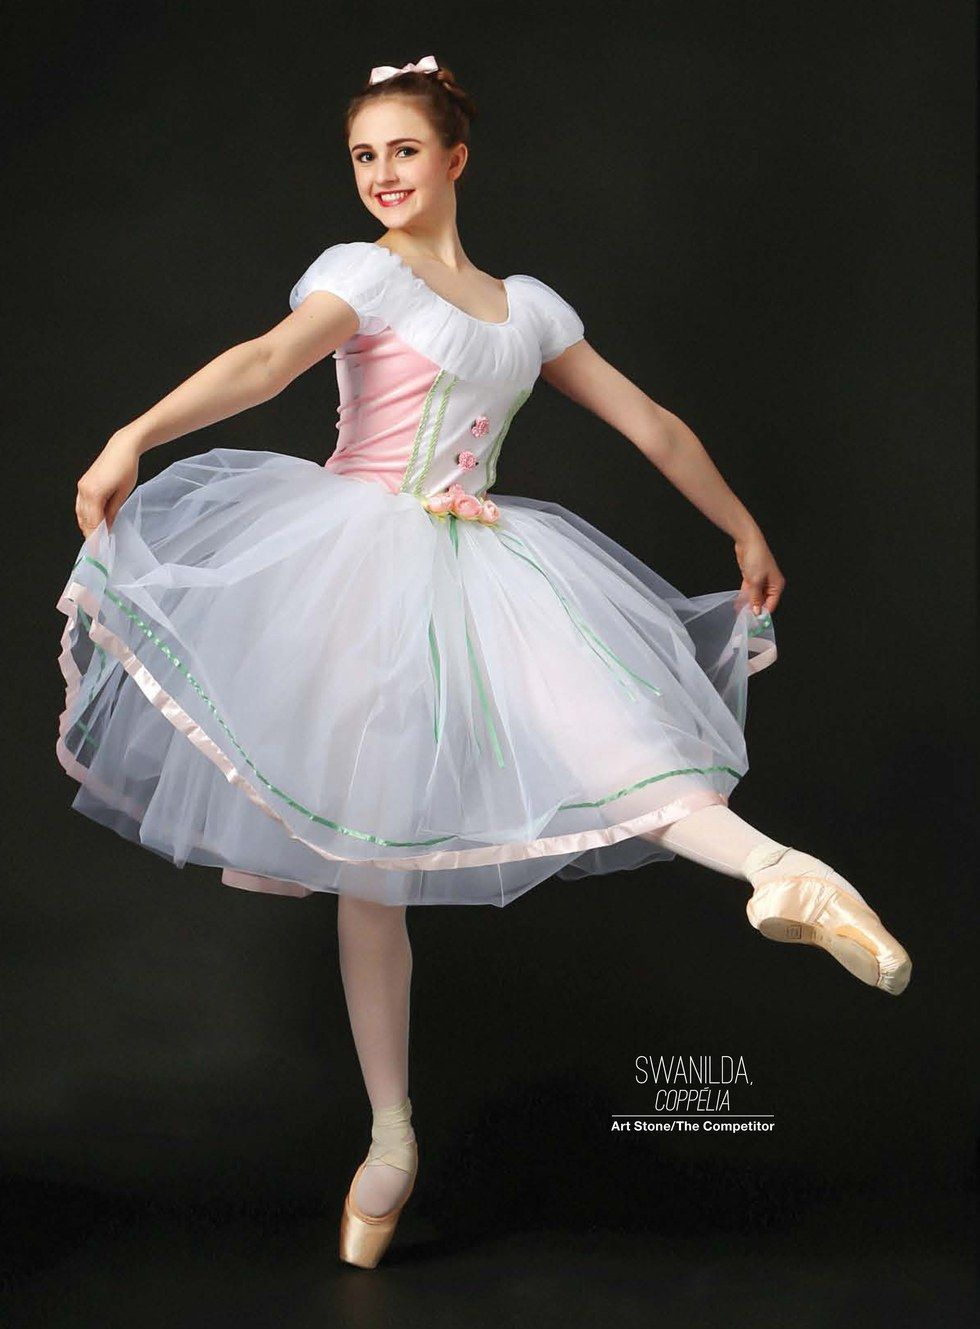 f1834c558 Dress the Part  Ballet Costumes Fit for Leading Ladies